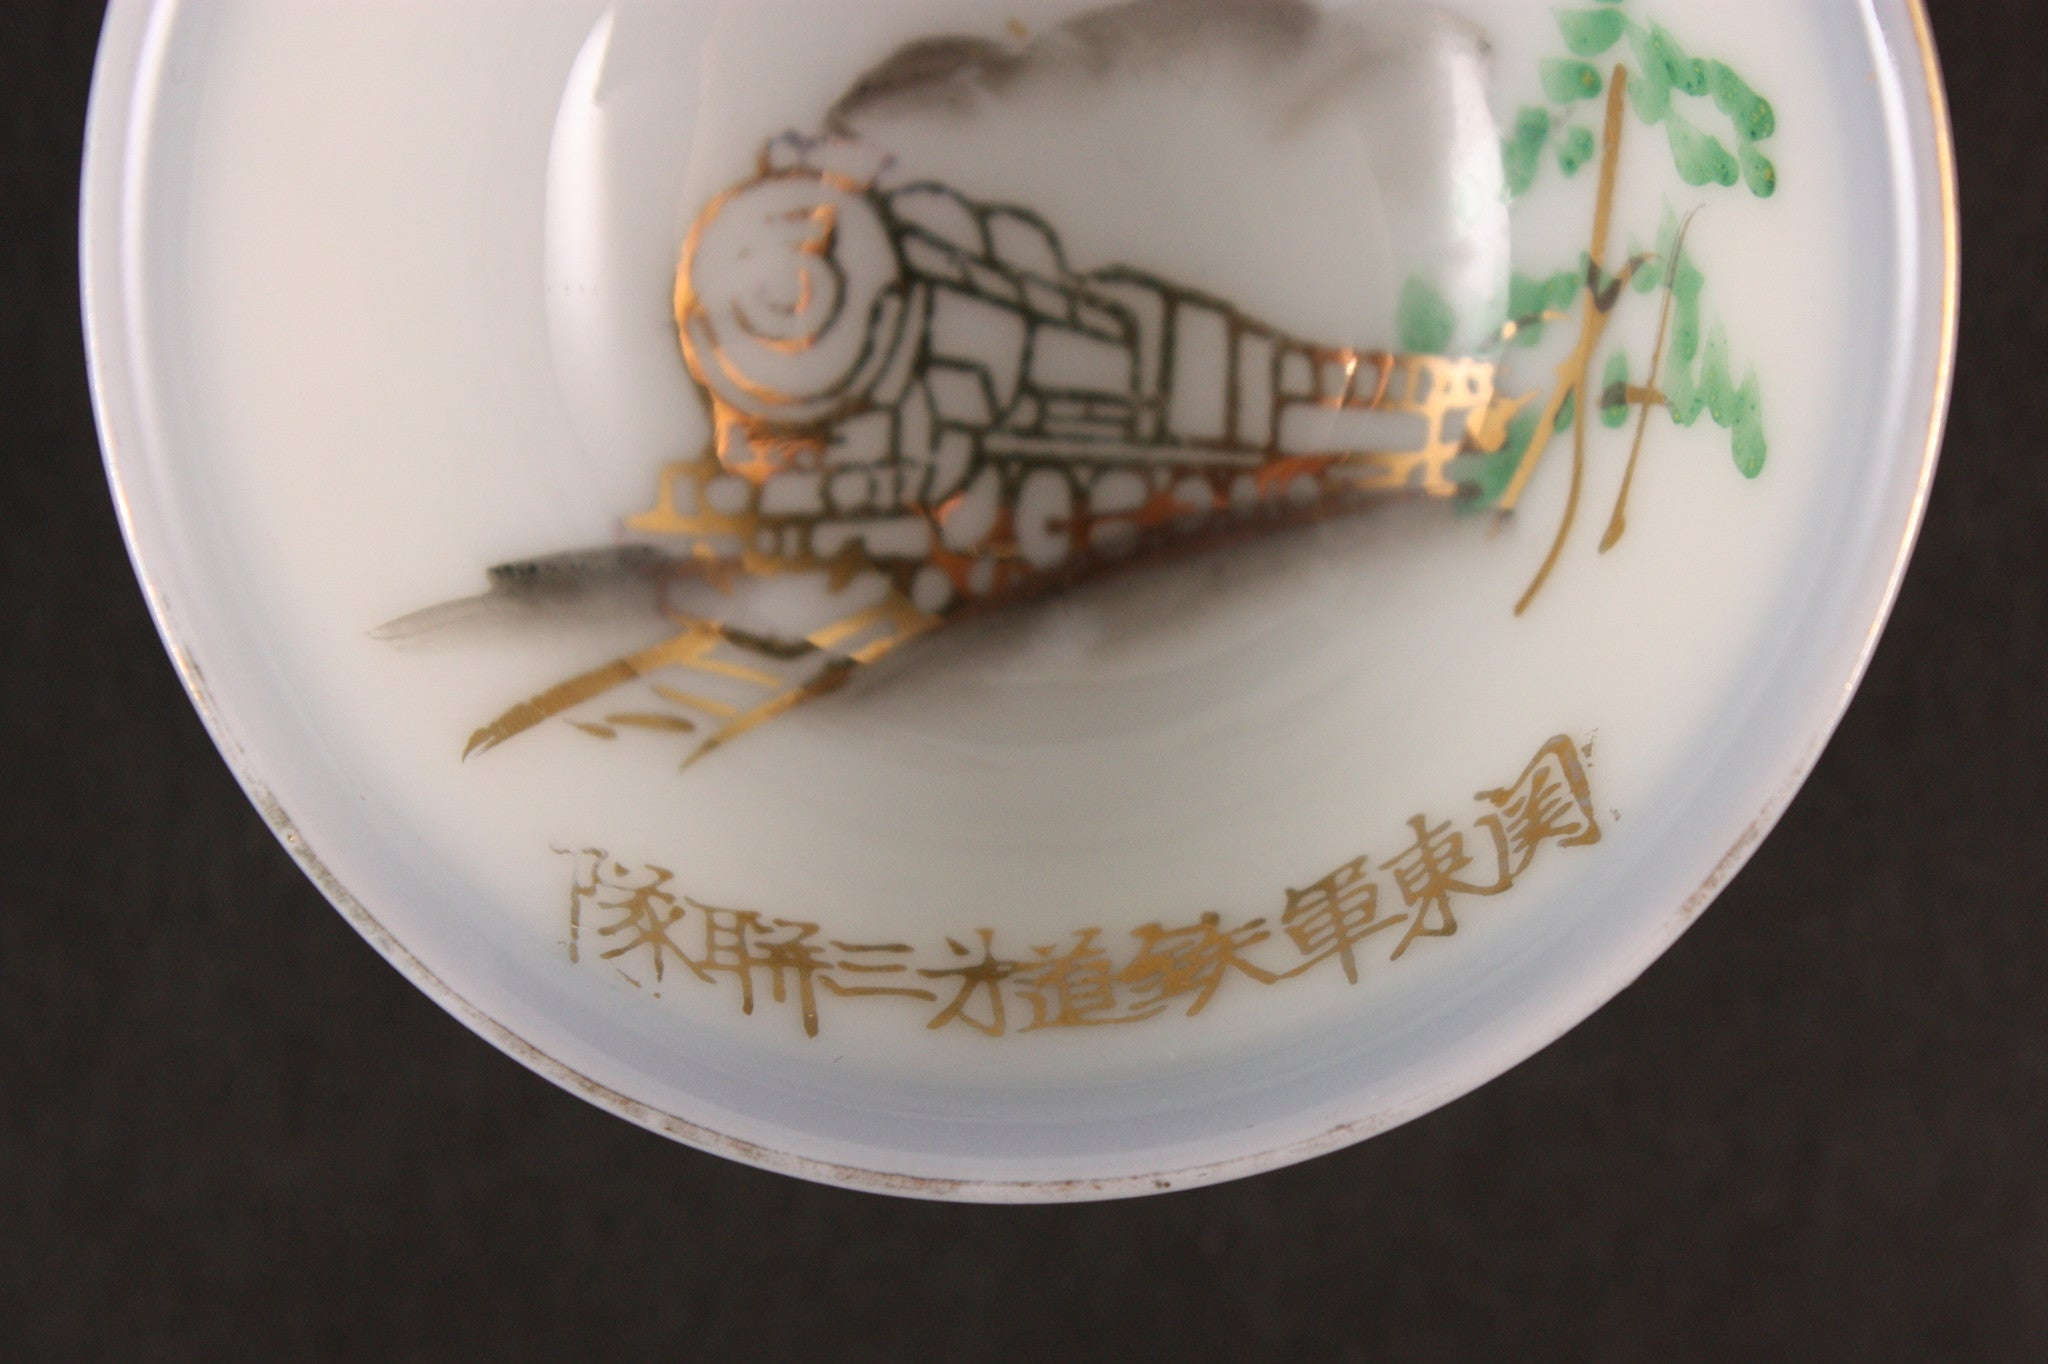 Antique Japanese WW2 Kwantung Army Railroad Regiment Army Sake Cup